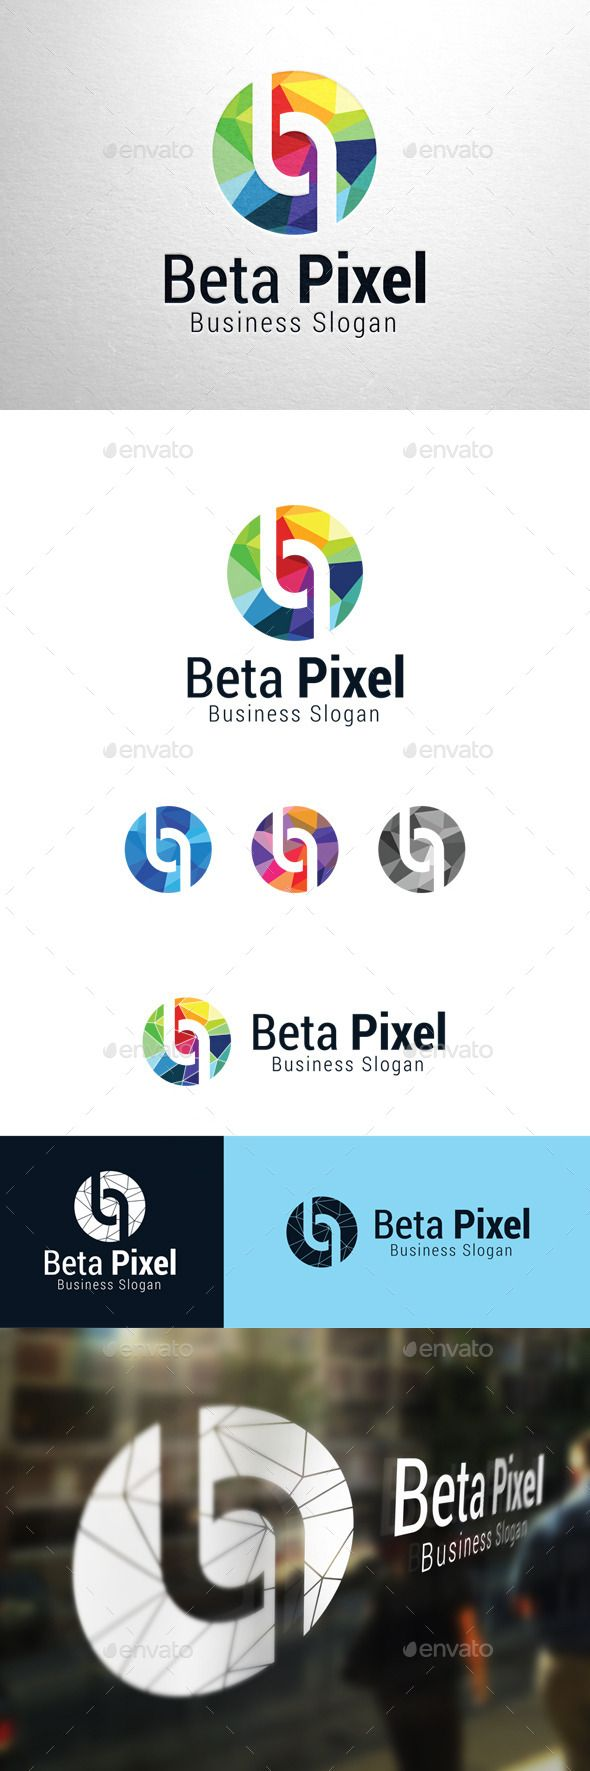 Beta Pixel Letter p & b - Logo Design Template Vector #logotype Download it here: http://graphicriver.net/item/beta-pixel-letter-p-b-logo/11184471?s_rank=792?ref=nesto